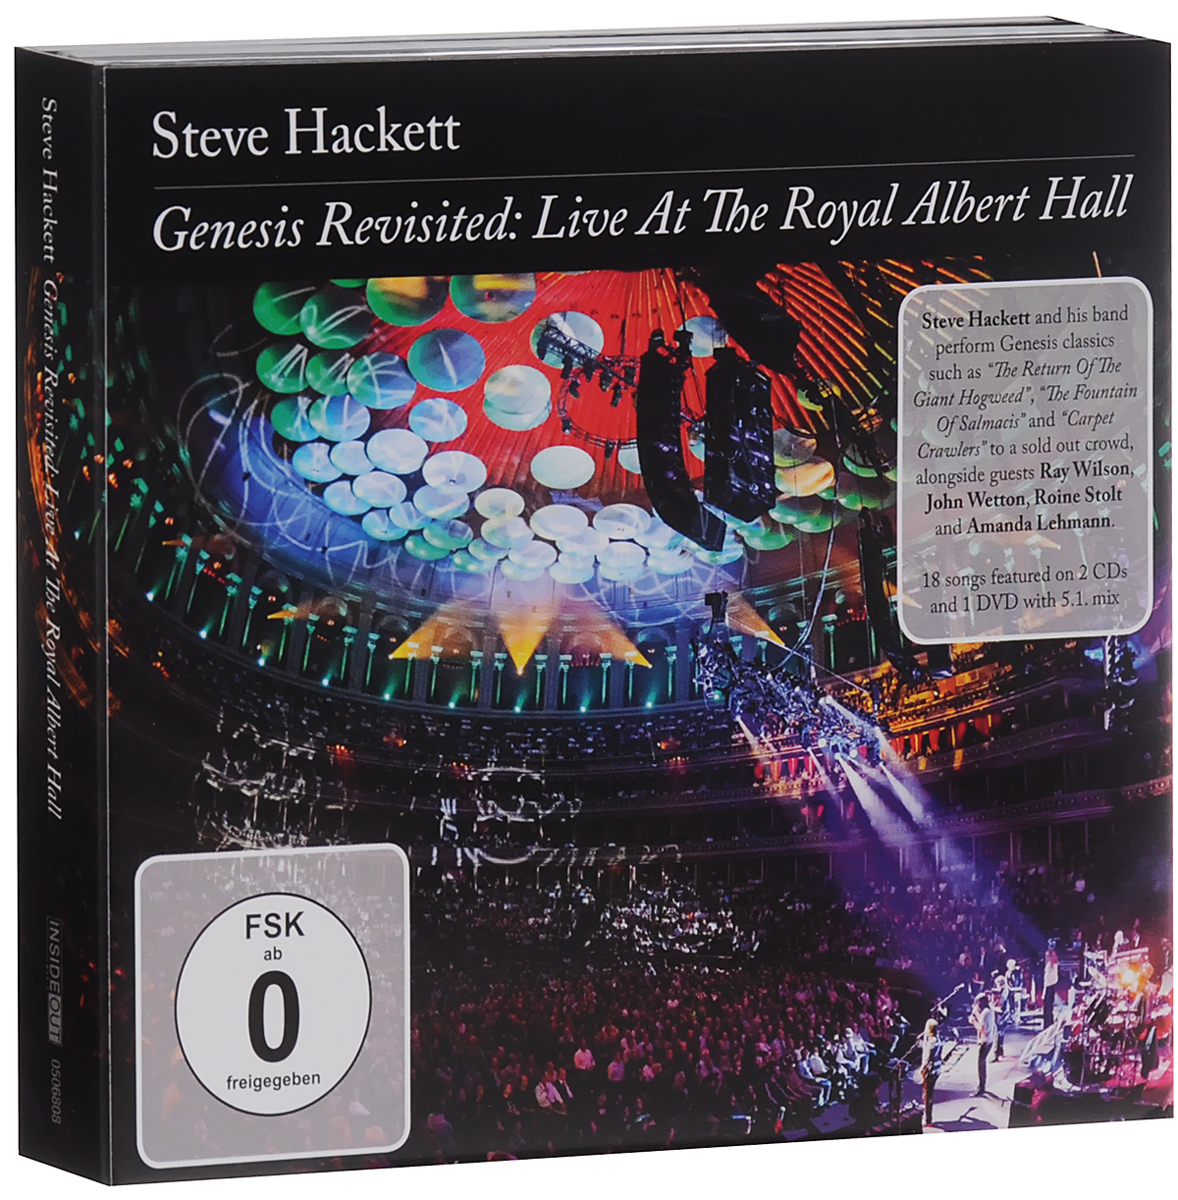 Стив Хэкетт Steve Hackett. Genesis Revisited. Live At The Royal Albert Hall (2 CD + DVD) genesis – the lamb lies down on broadway 2 lp